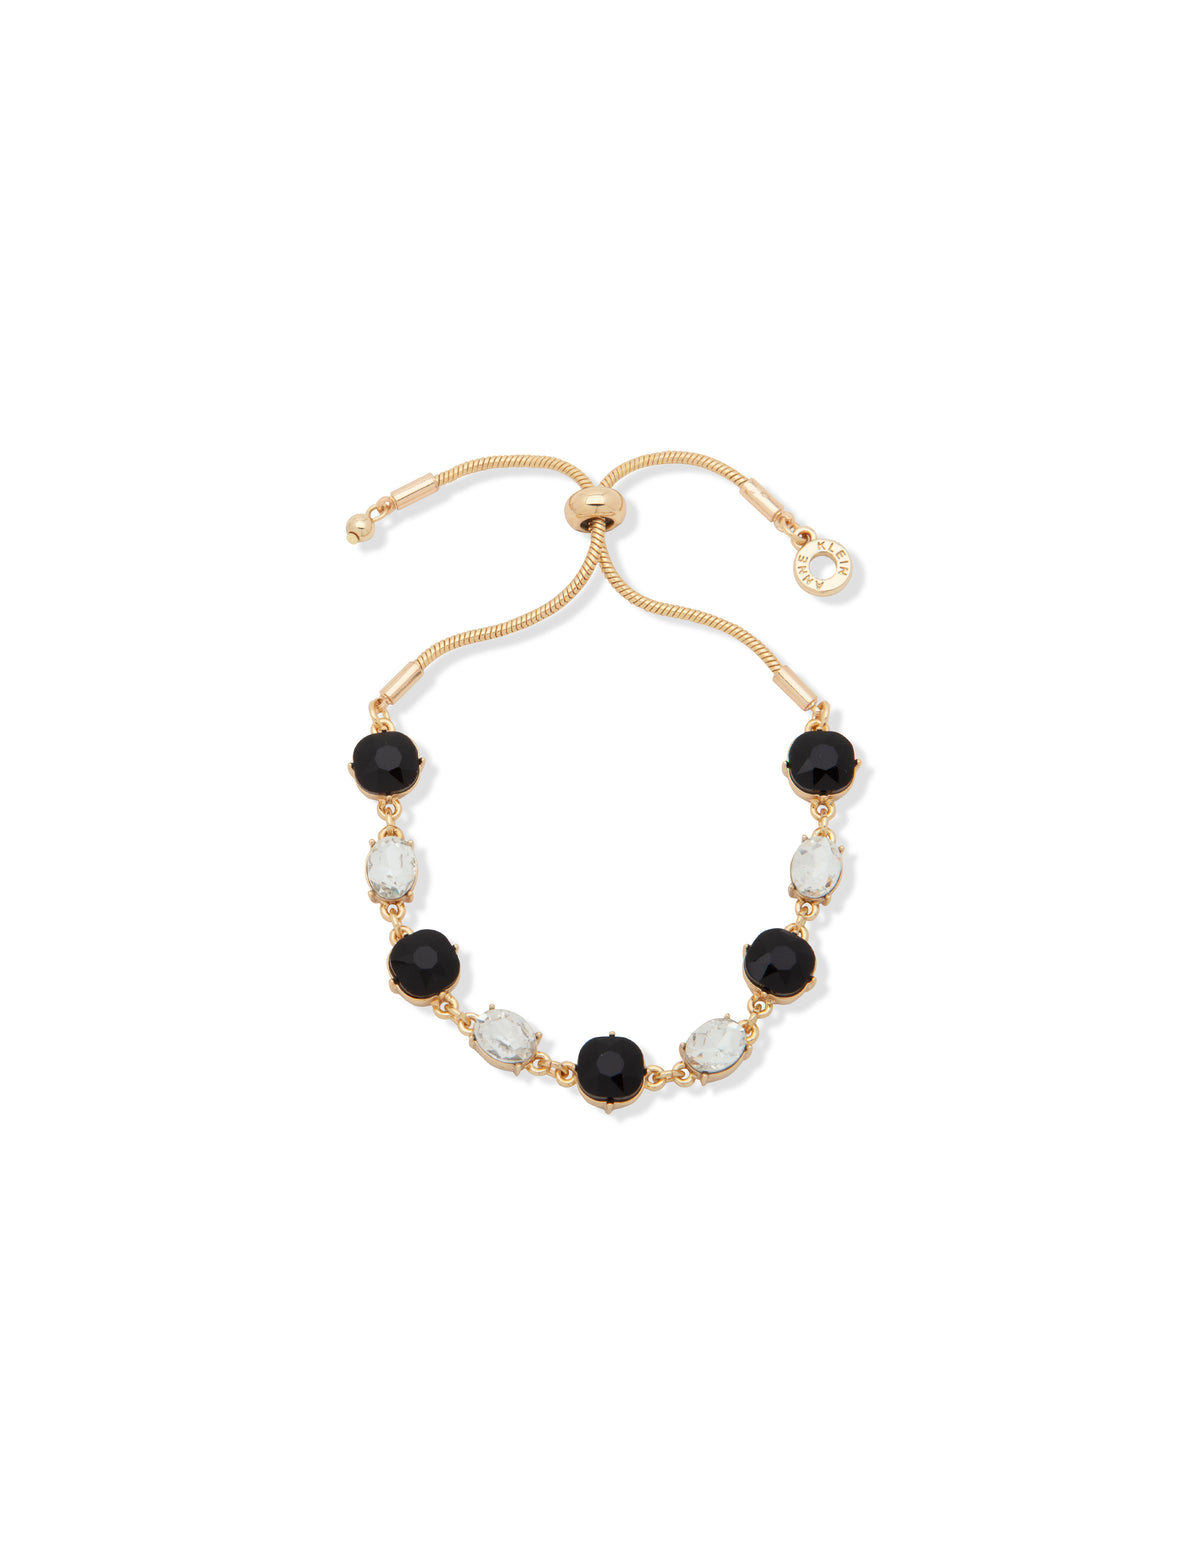 Gold-Tone Crystal Accent Bracelet